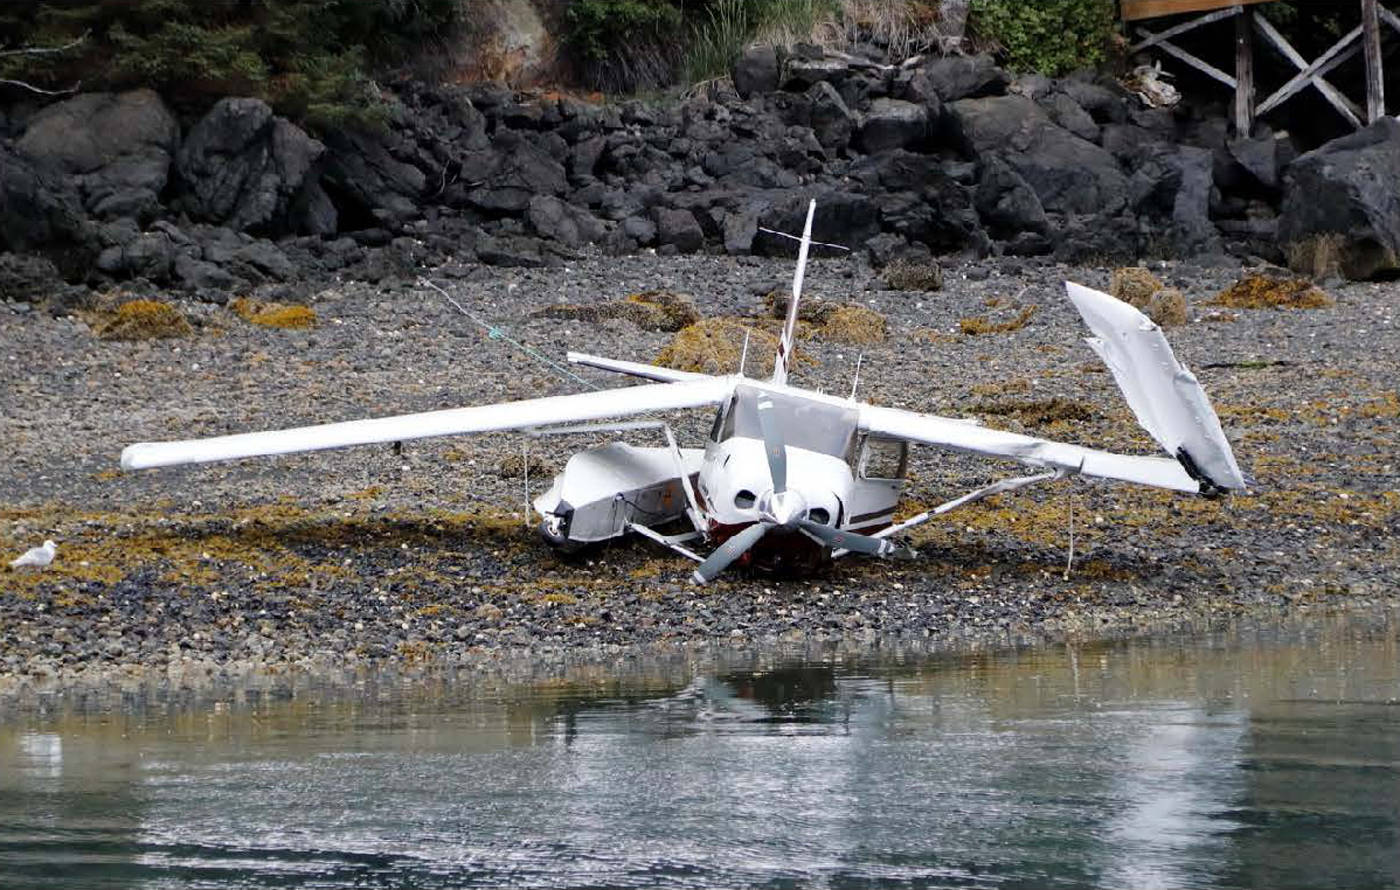 This photo from a National Transportation Safety Board report shows Alaska Dispatch News owner Alice Rogoff's Cessna 206 on the beach, sans floats, after a crash landing into the water on July 3, 2016 in Halibut Cove, Alaska. The NTSB noted in its report that Rogoff's attempted landing happened over glassy water conditions. (Photo courtesy NTSB)